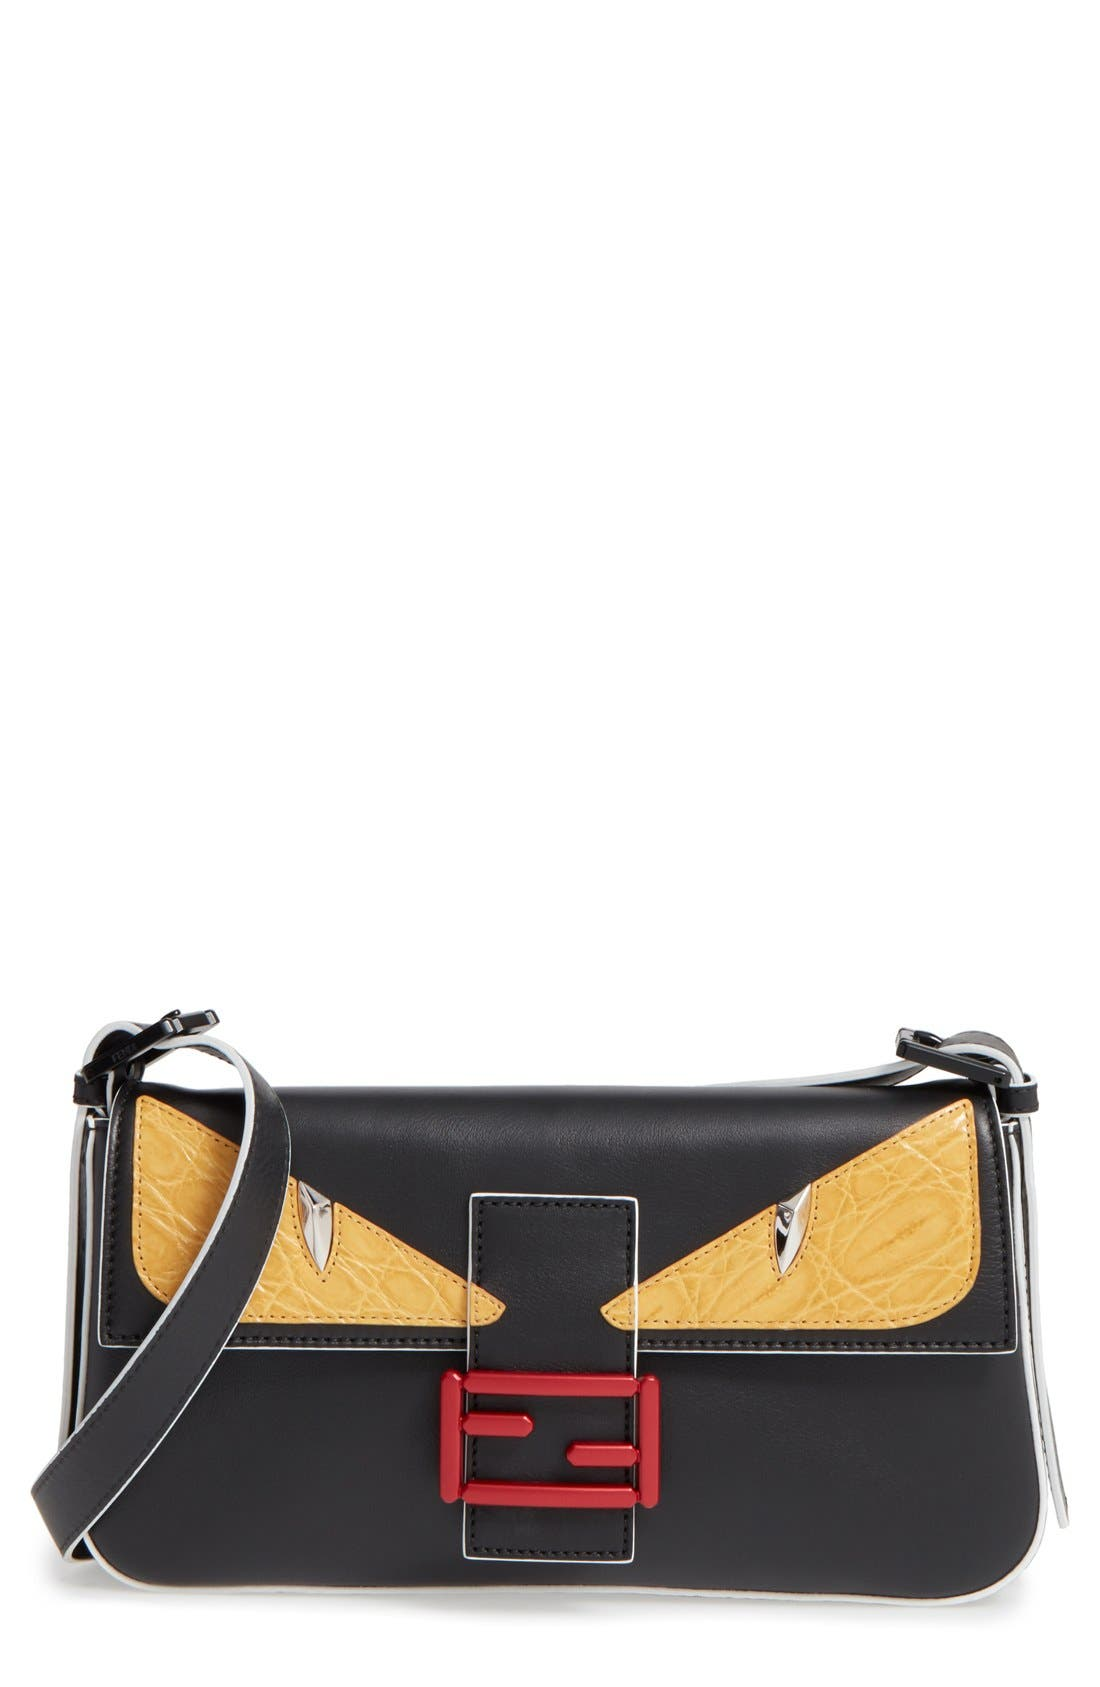 'Mini Monster' Leather Baguette,                         Main,                         color, Black/Sunflower